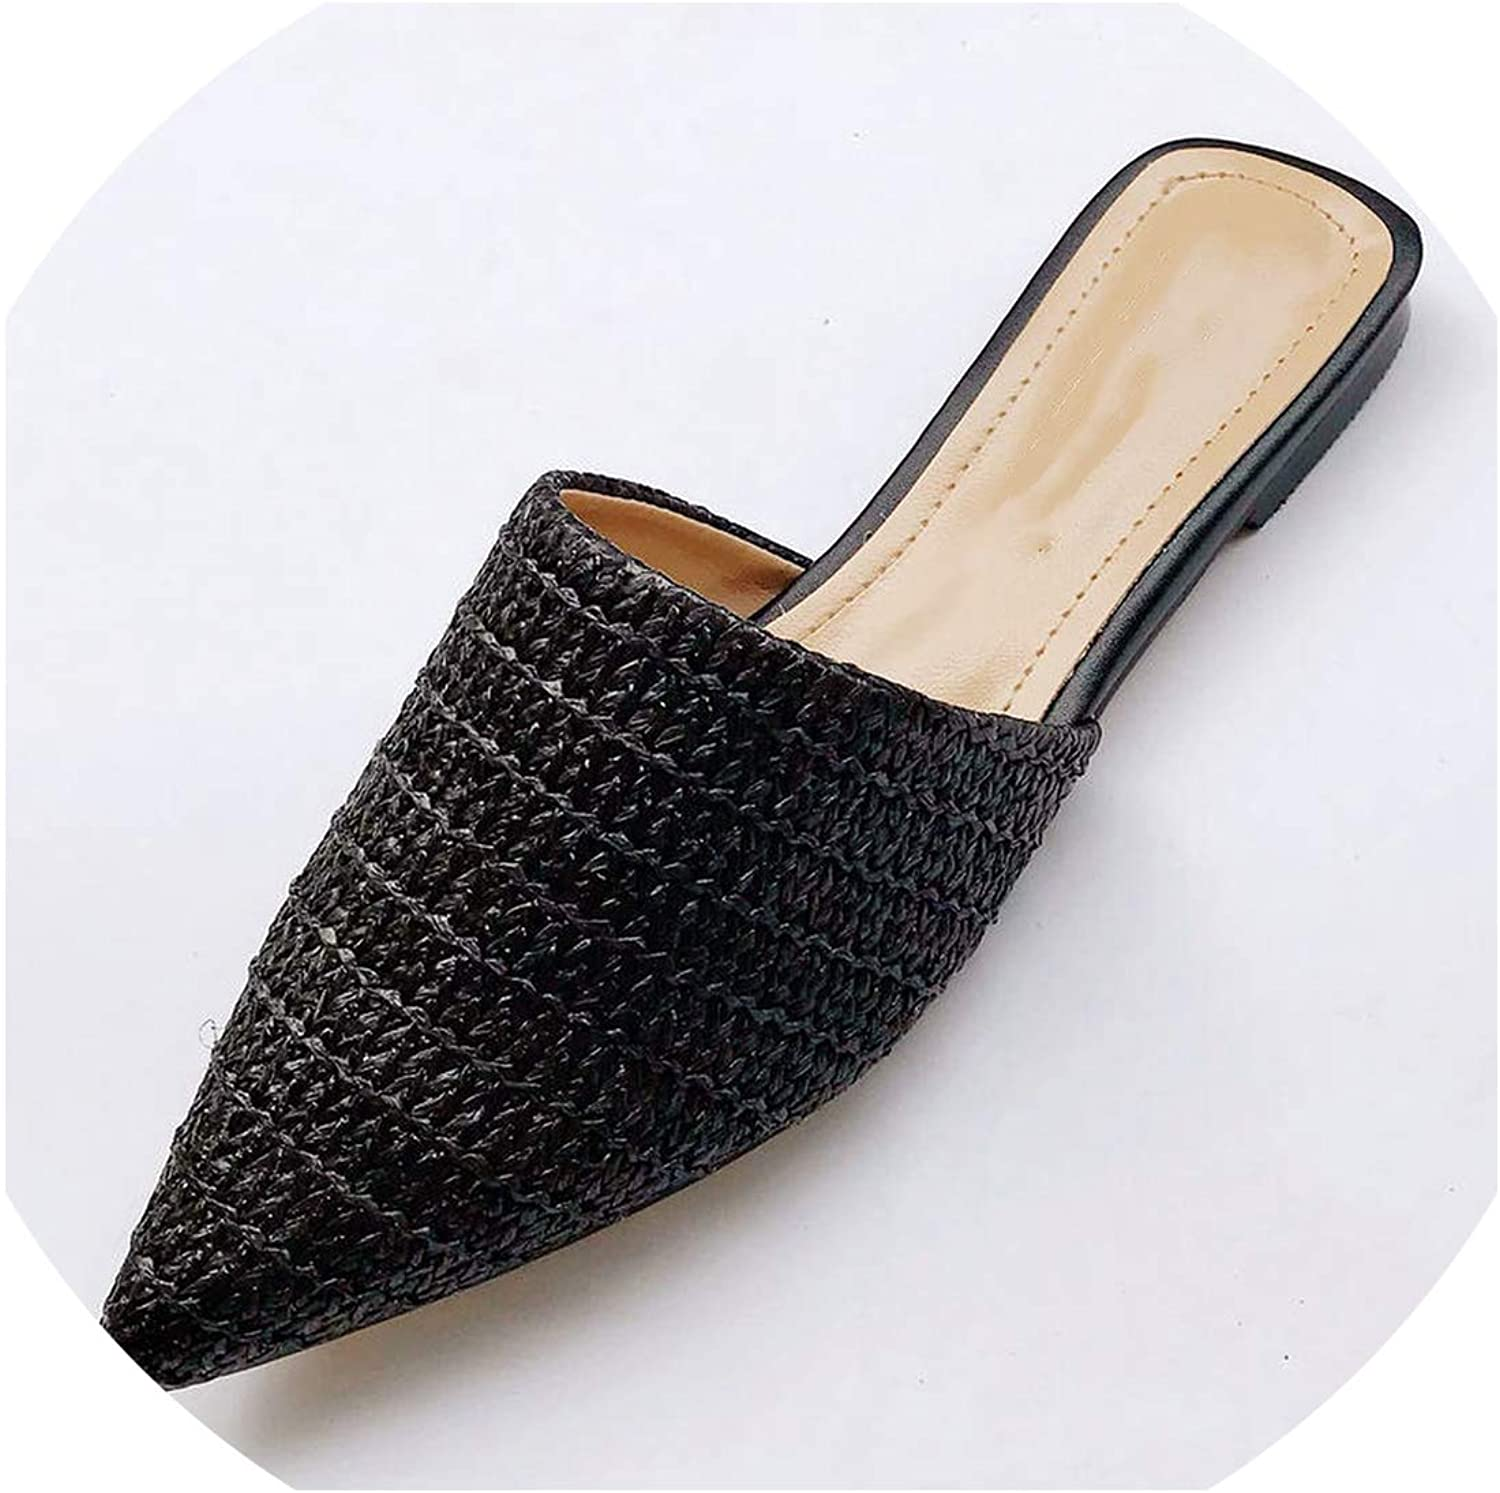 Fairly slippers Weave Flat shoes Woman Mules shoes Pointed Toe Half Slippers Outside Slides SX1962